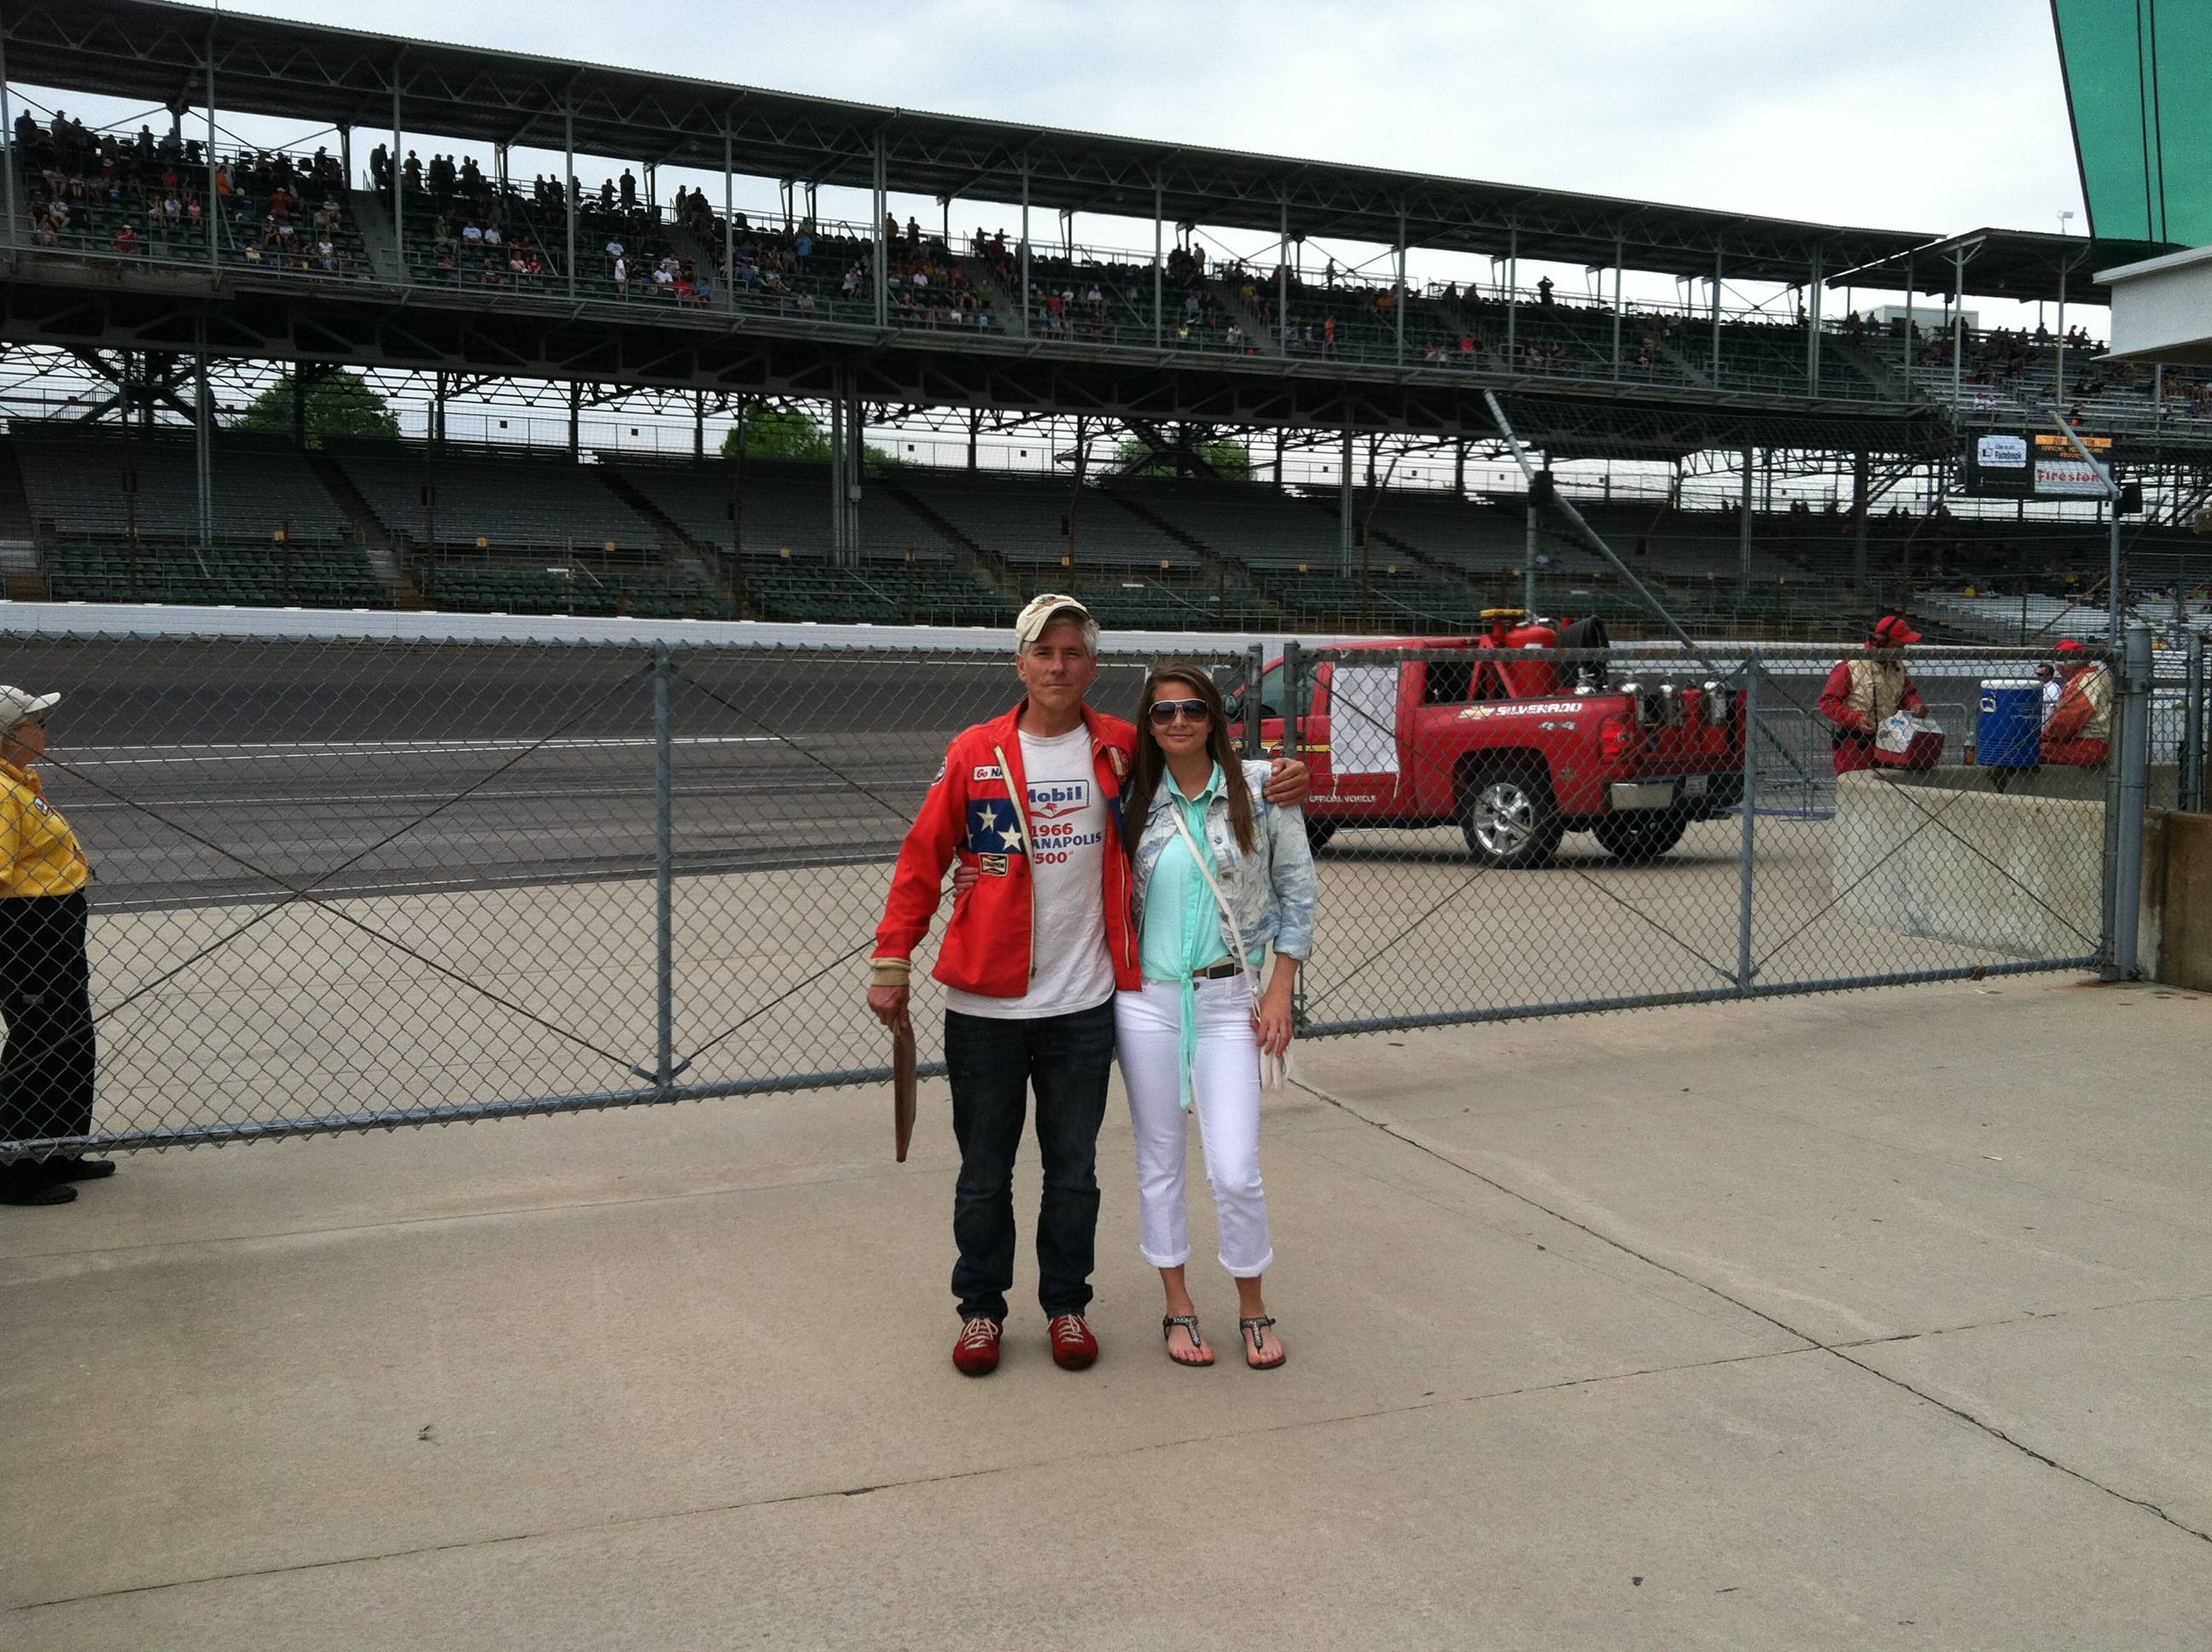 brittainy walther at ims